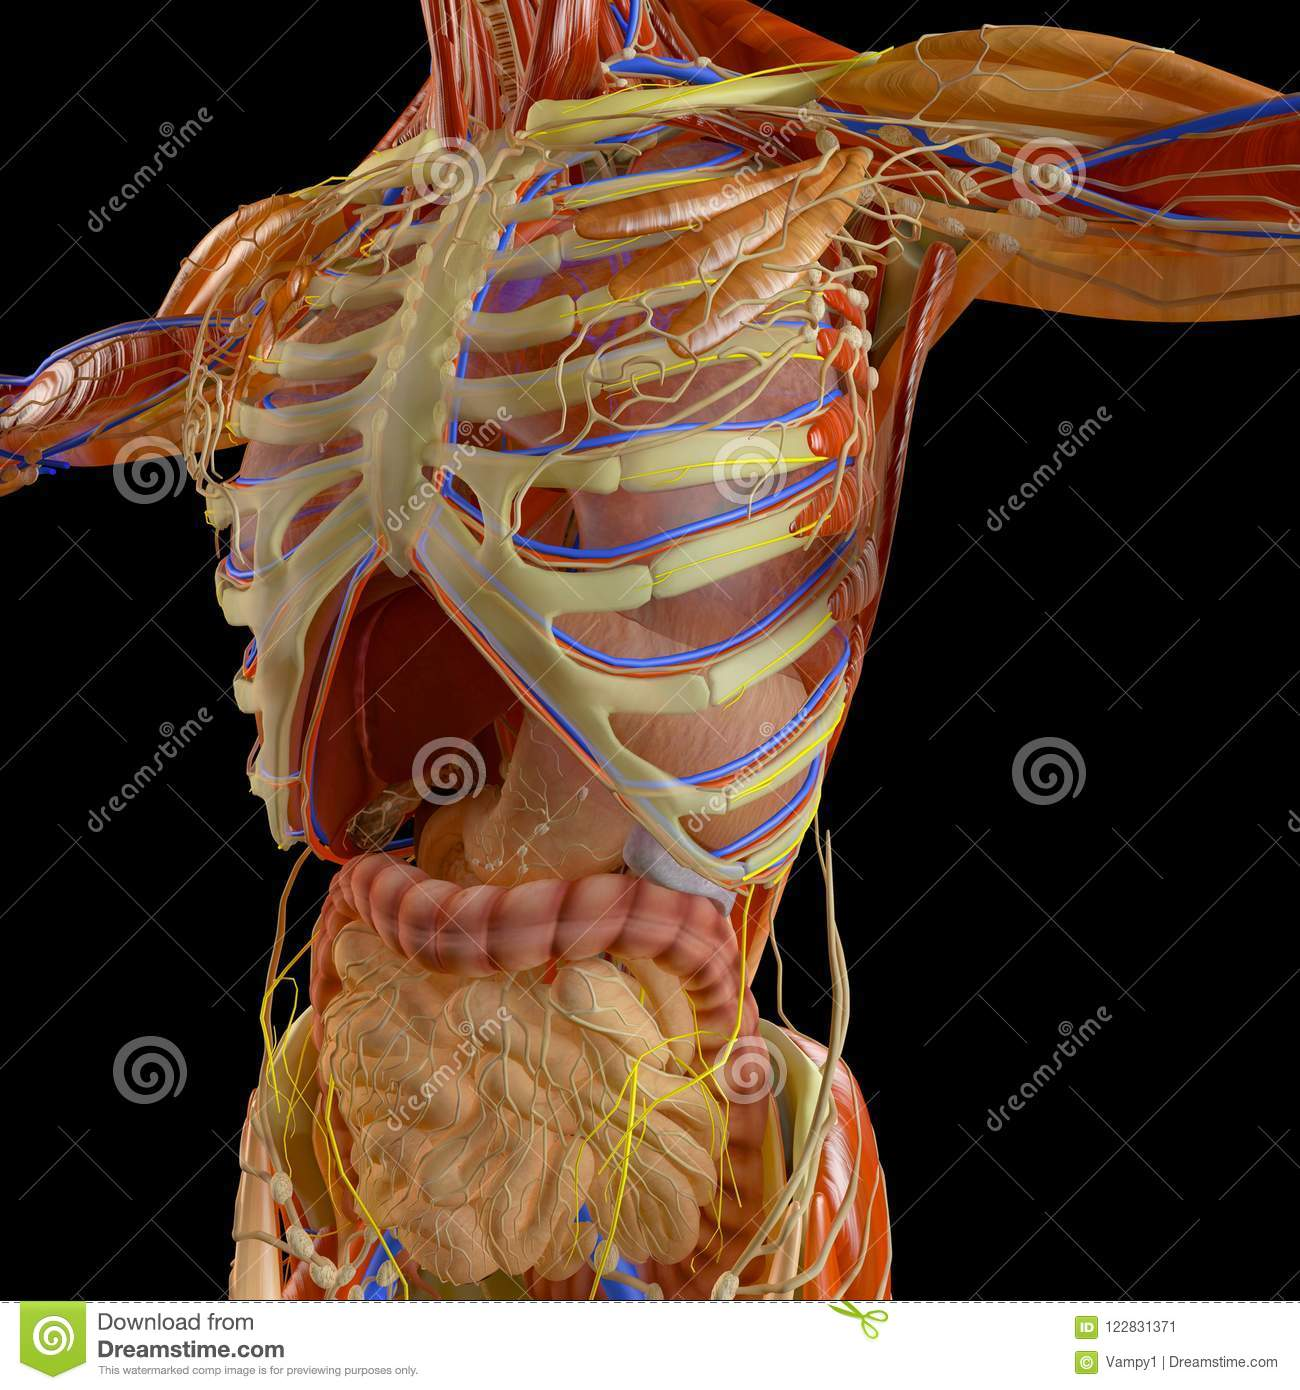 Human Body, X-ray View Of The Respiratory Apparatus And Digestive ...